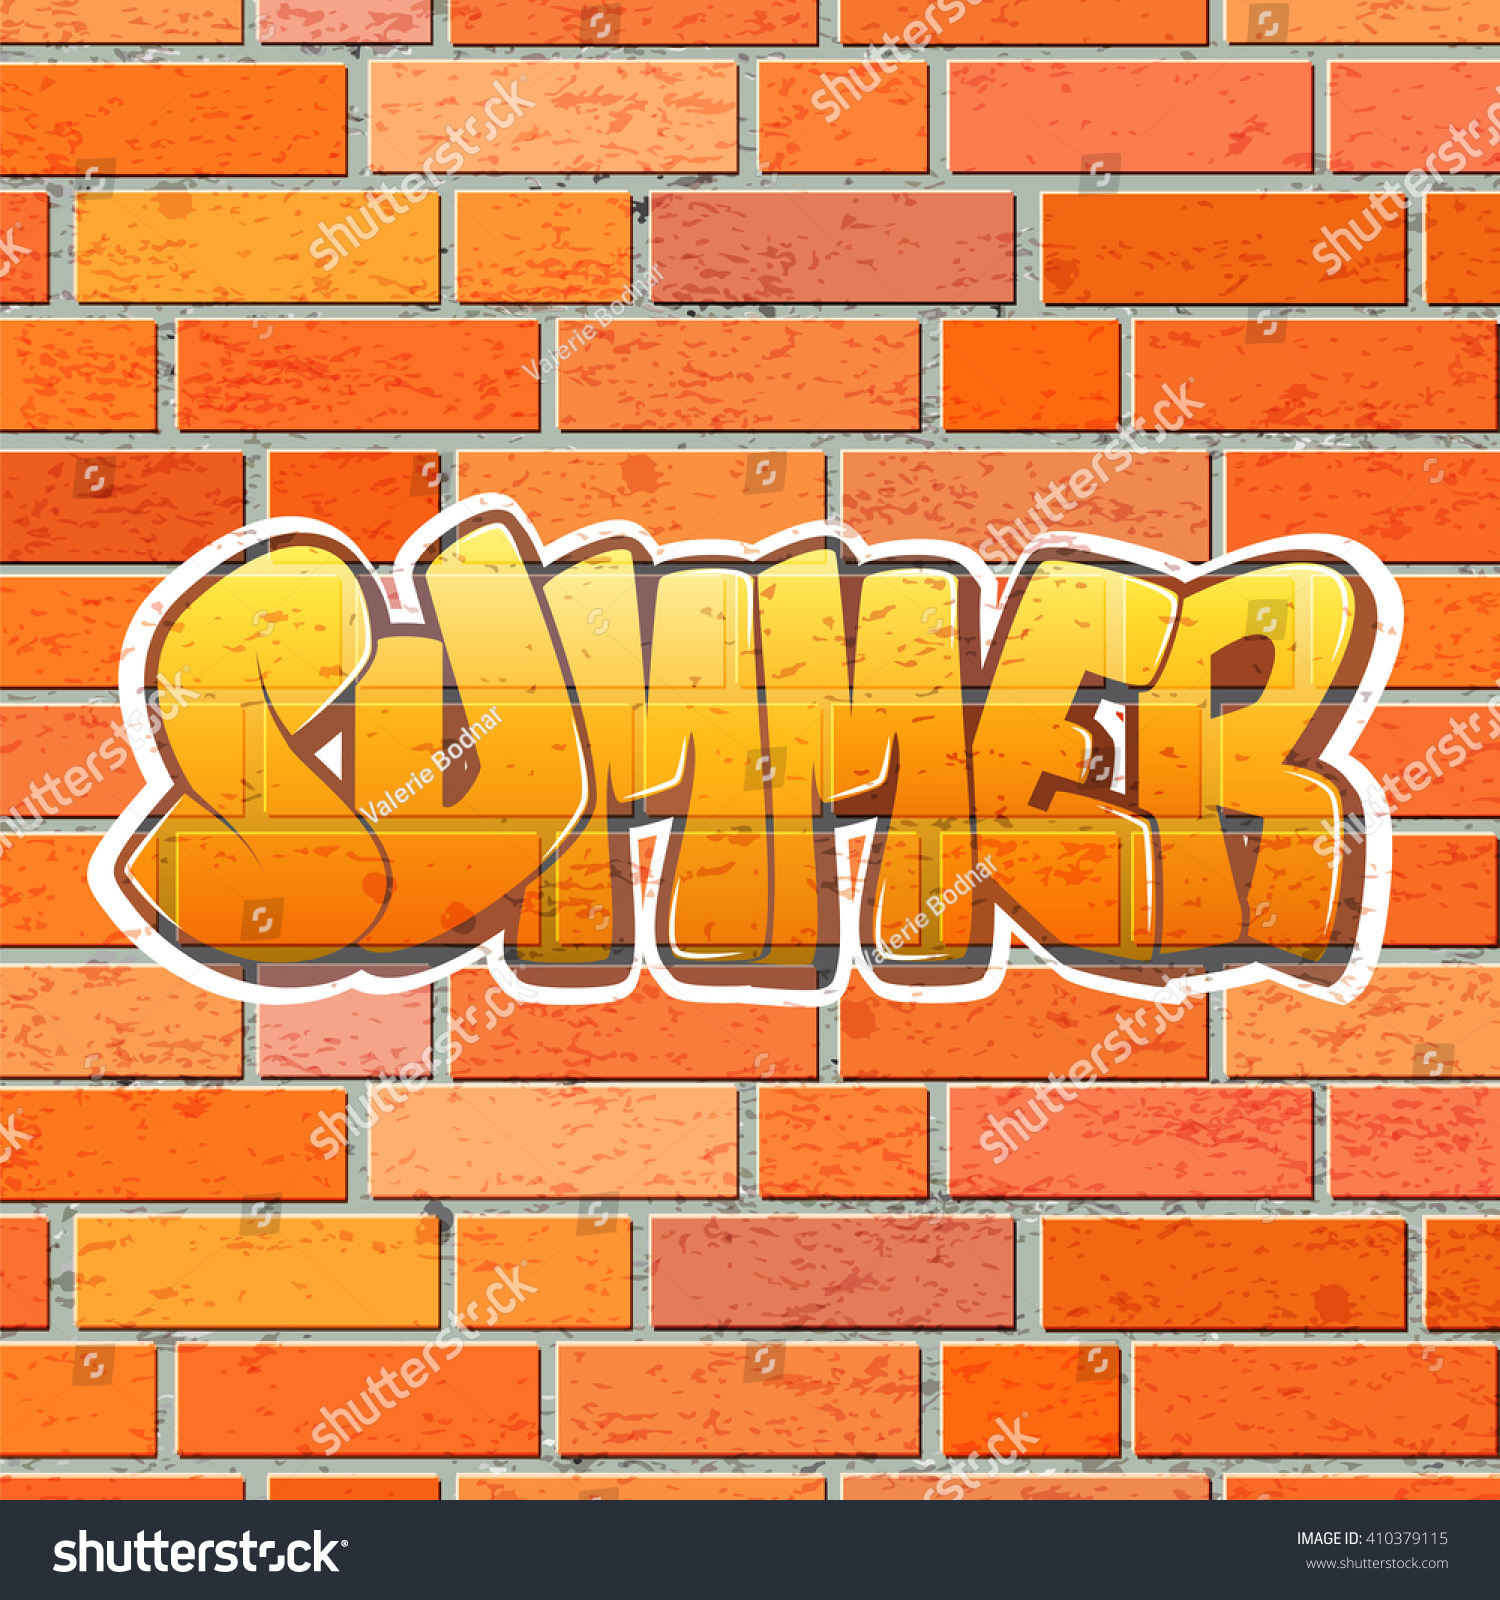 Graffiti wall vector free - Lettering Summer On The Brick Wall Vector Graffiti Wall Vector Illustration Of Red Brick